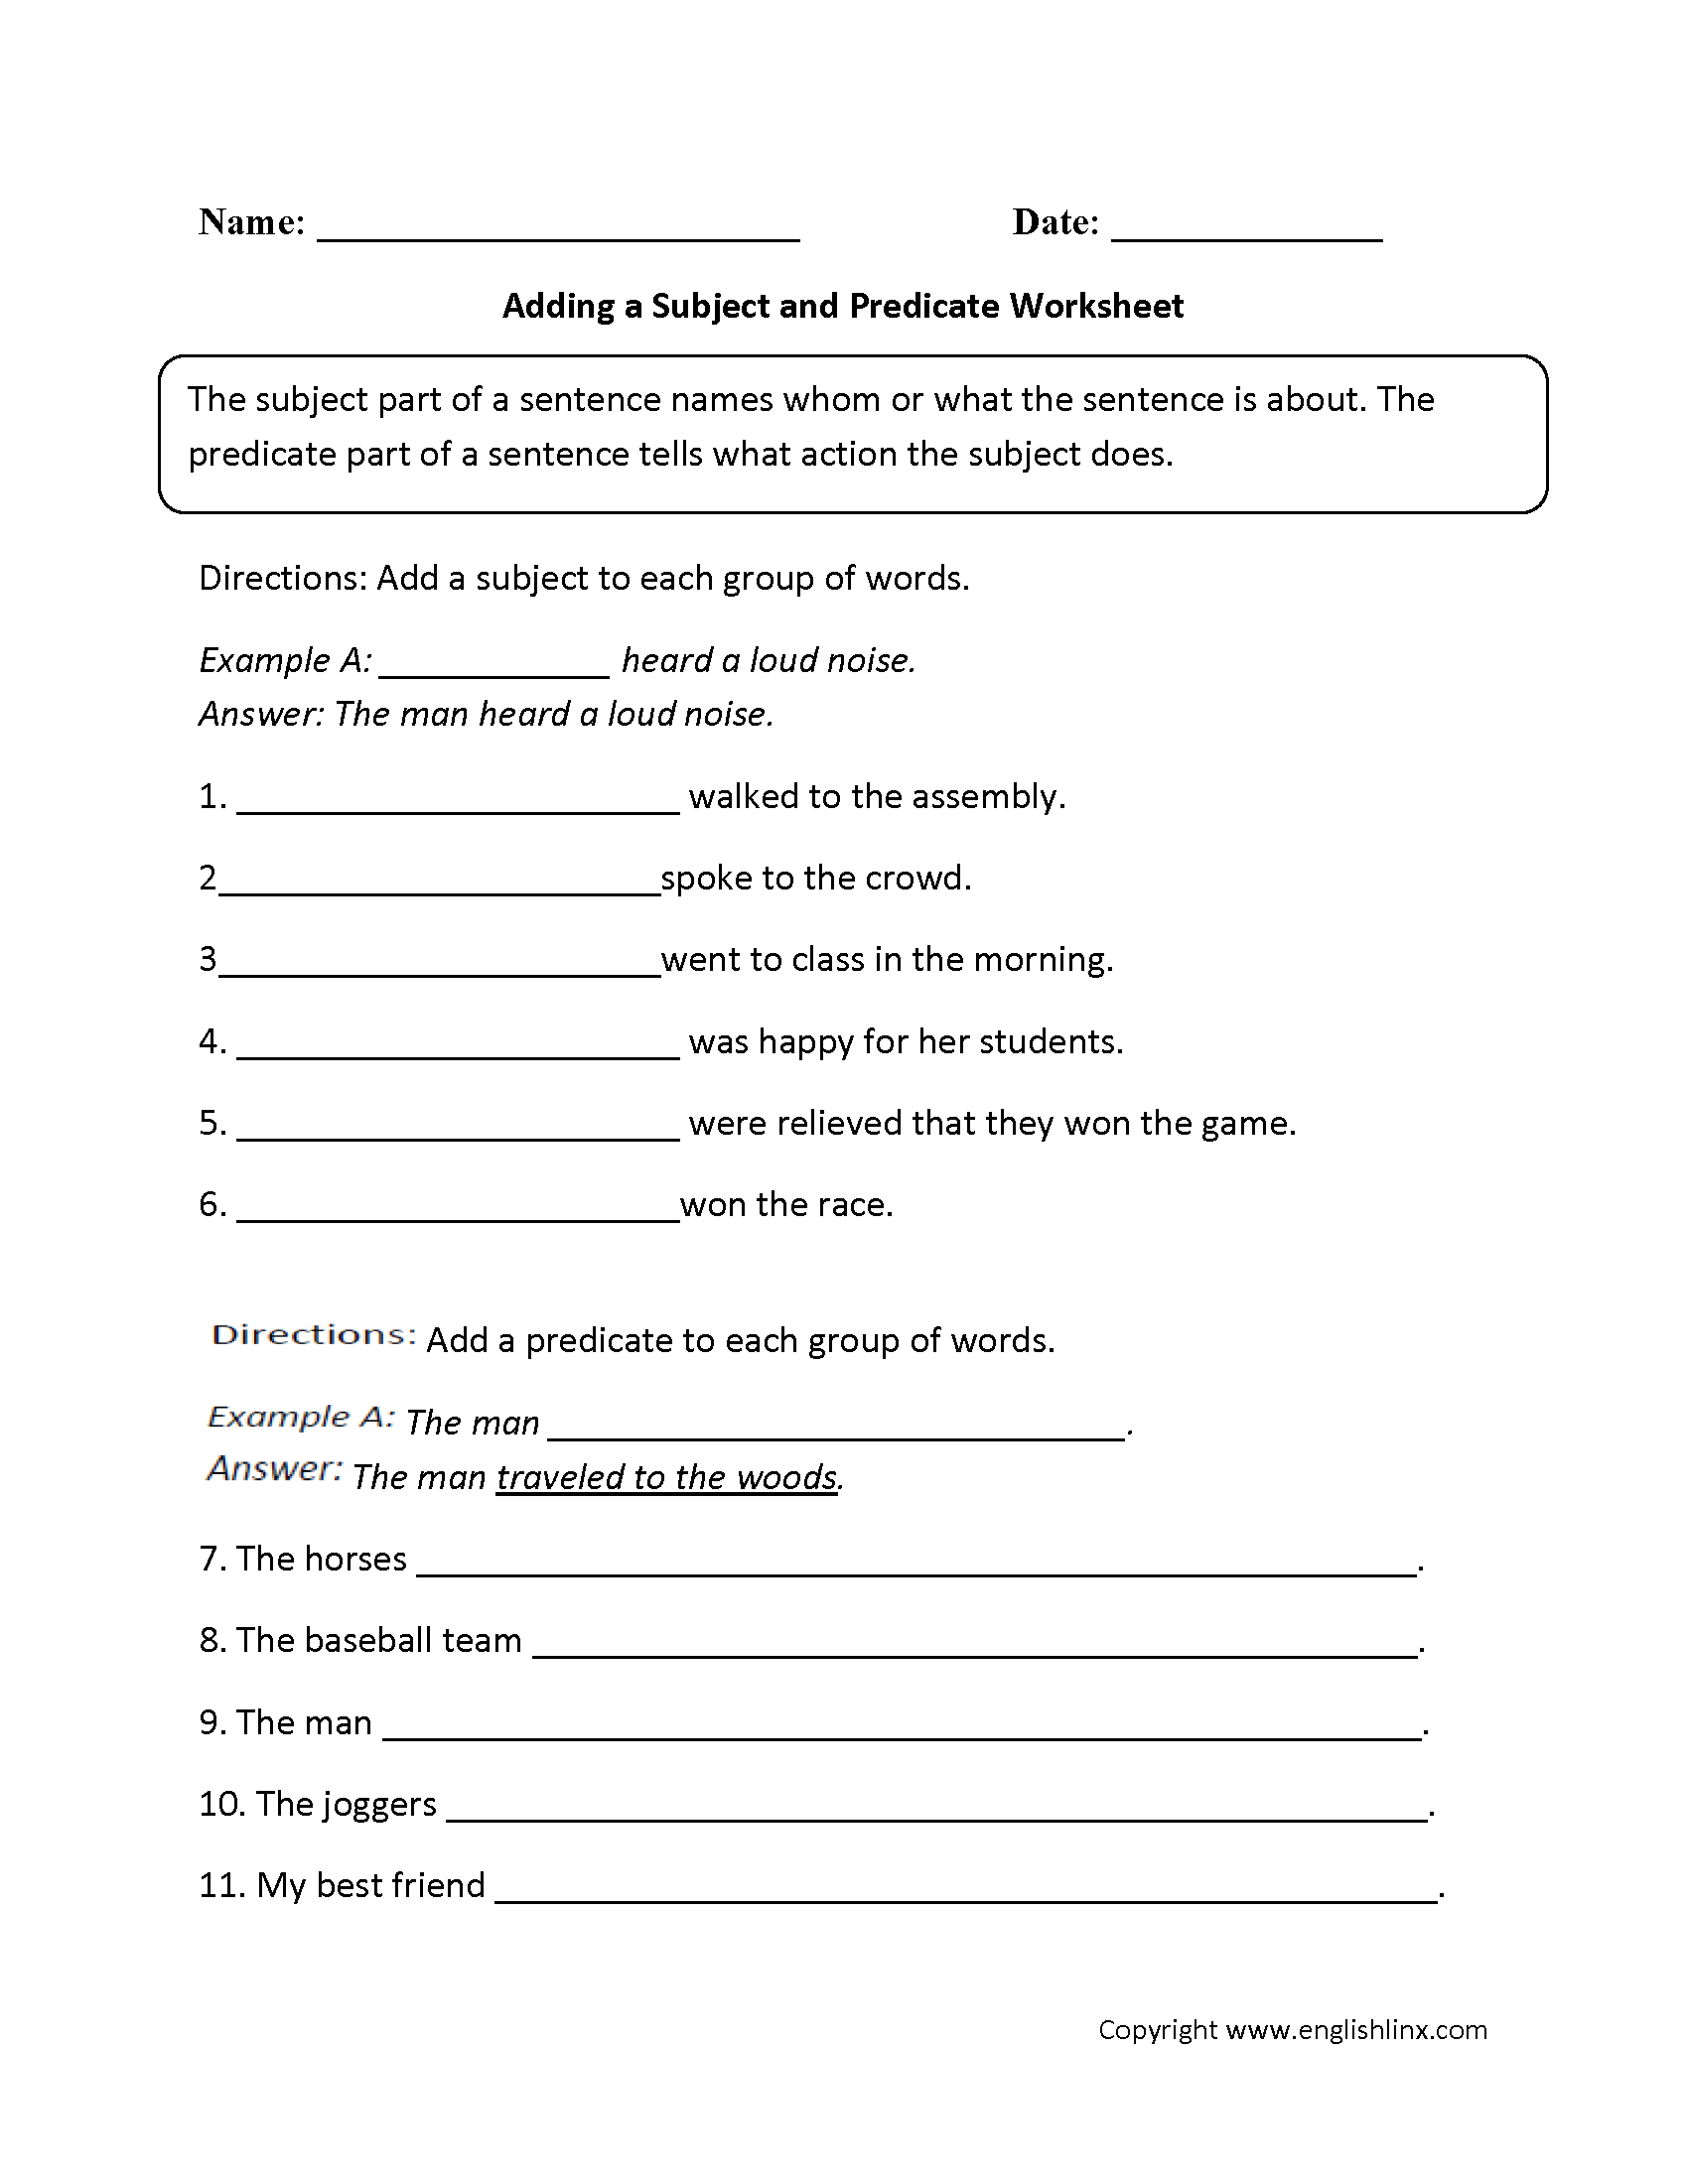 Worksheets Language Arts Worksheets For 3rd Grade adding a subject and predicate worksheet englishlinx com board writing ideas